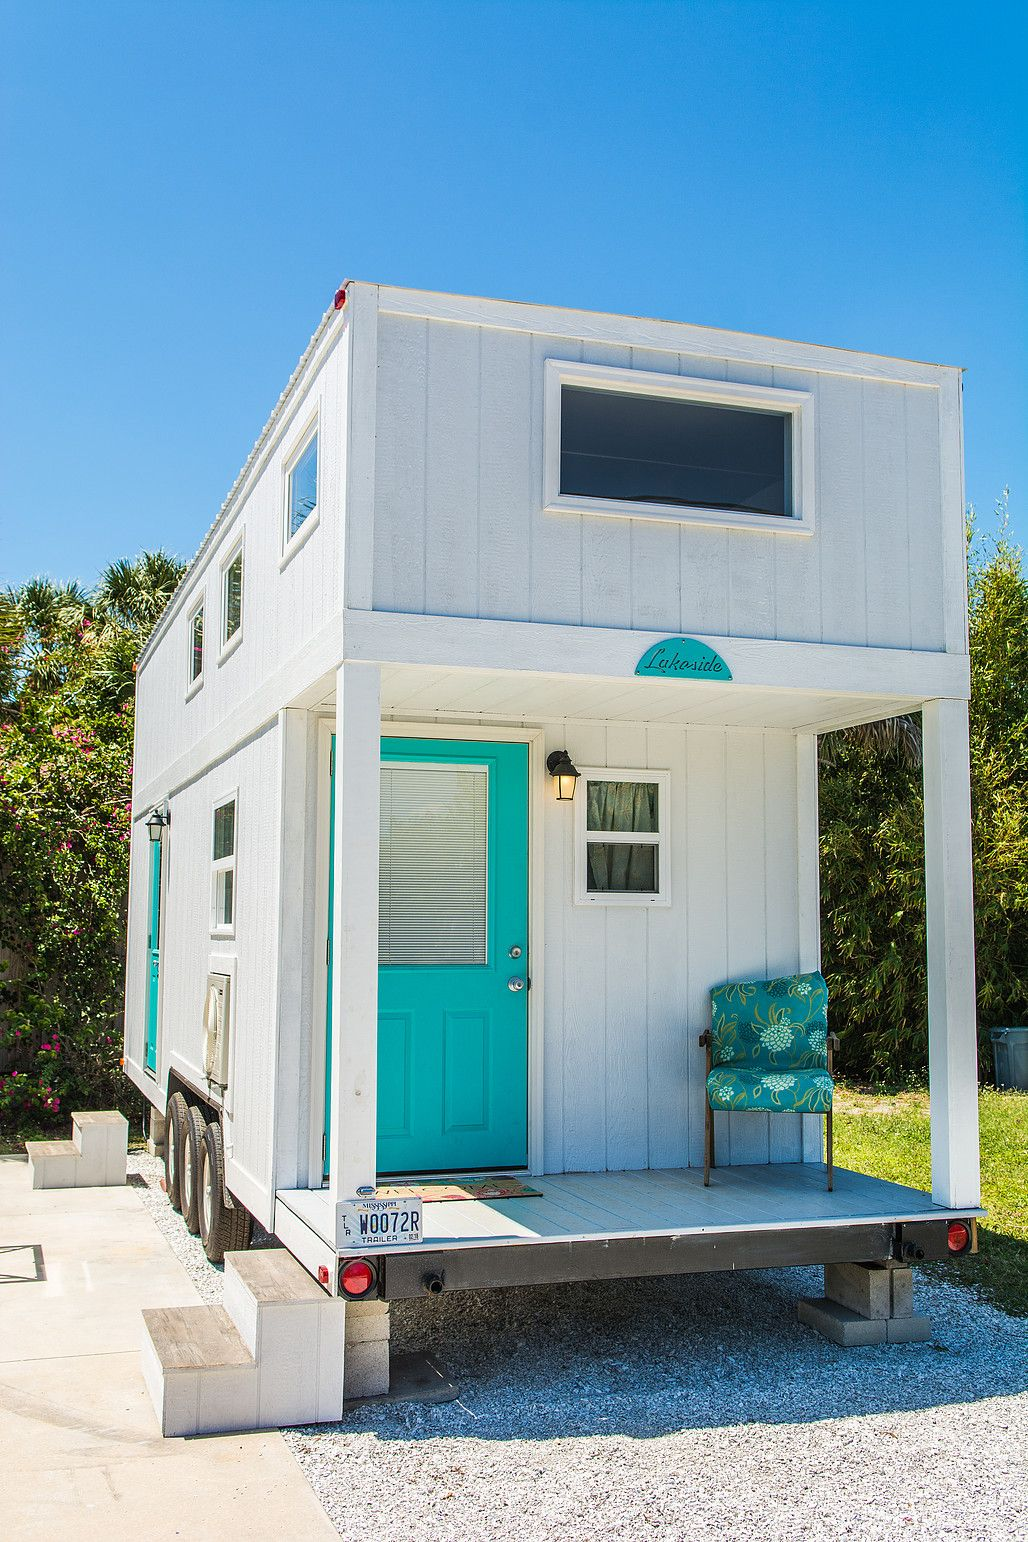 The Sand Dollar A Modern Tiny House On Wheels Available For Rent